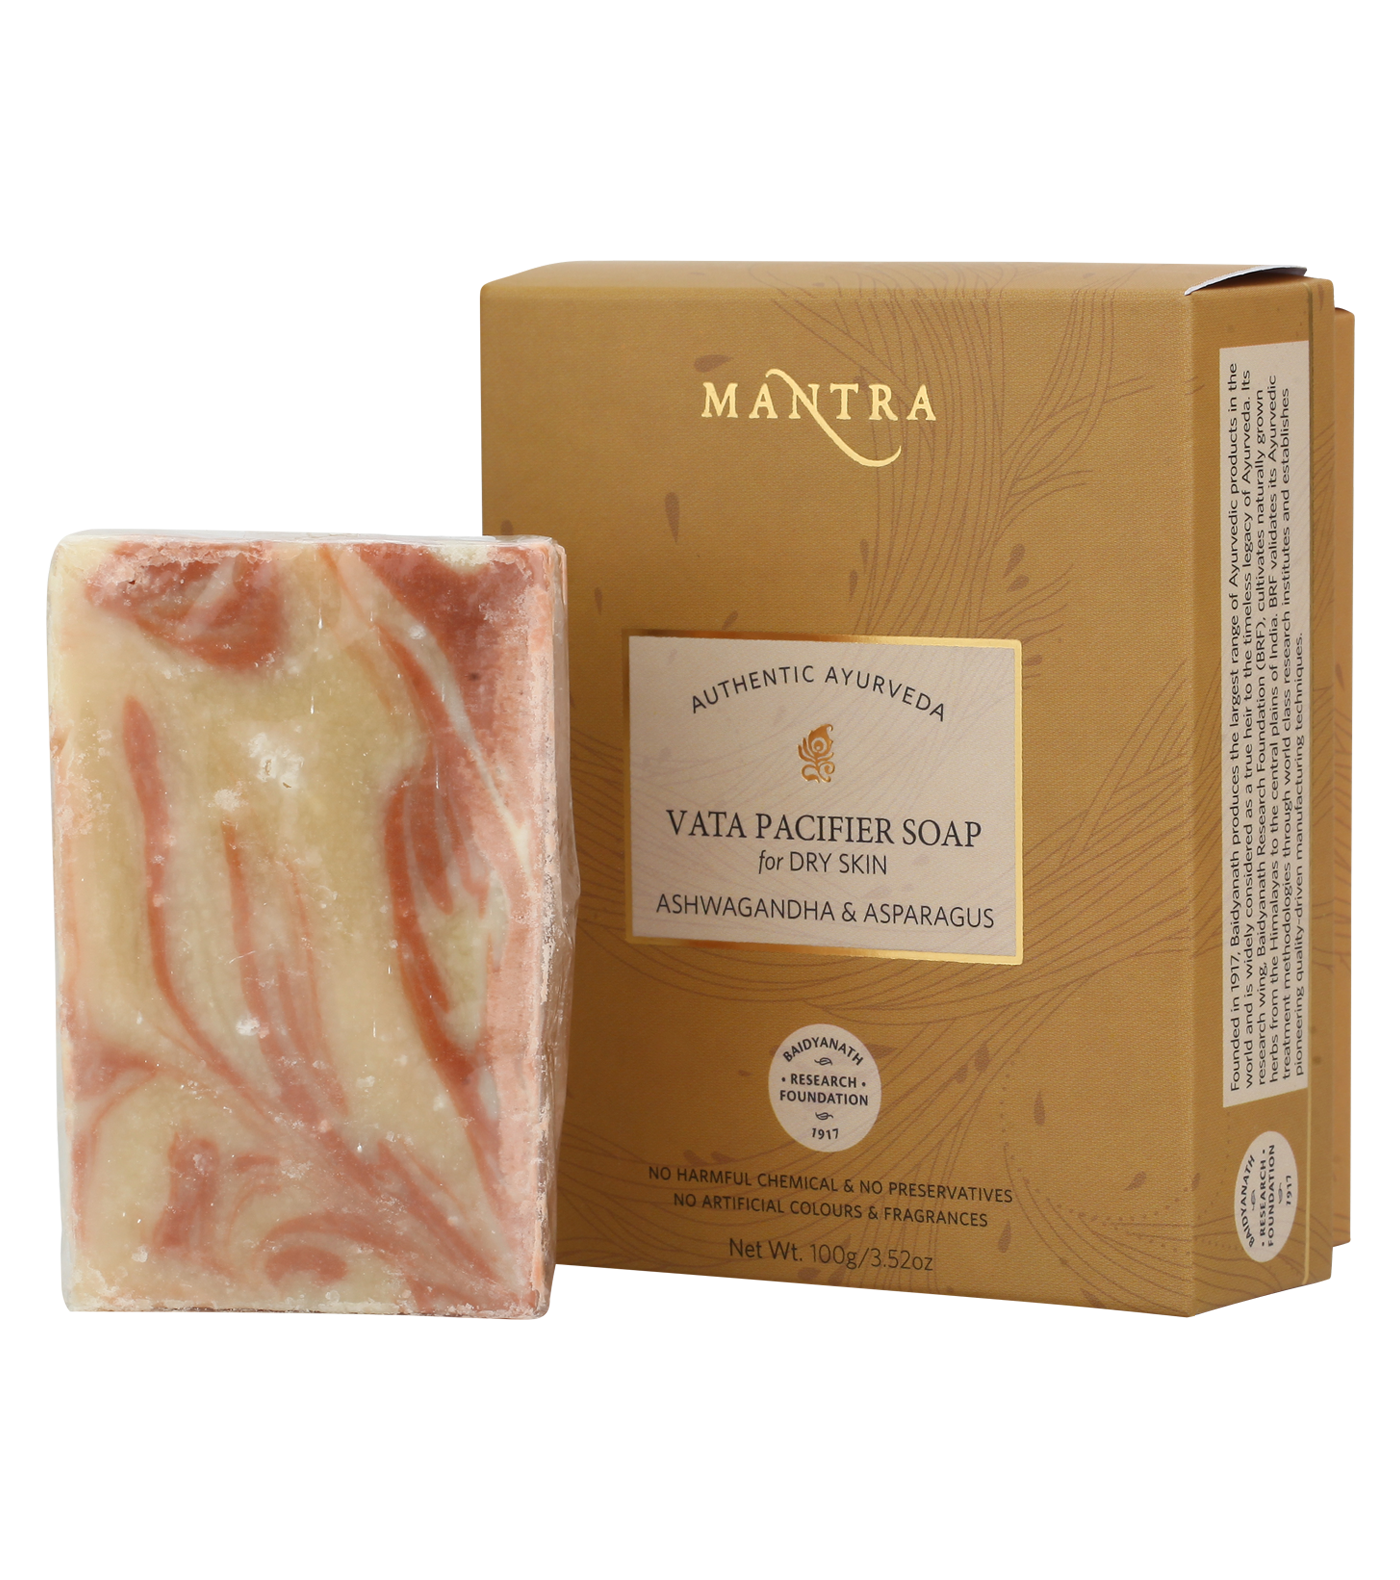 Vata Pacifier Soap for Dry Skin Ashwagandha & Asparagus